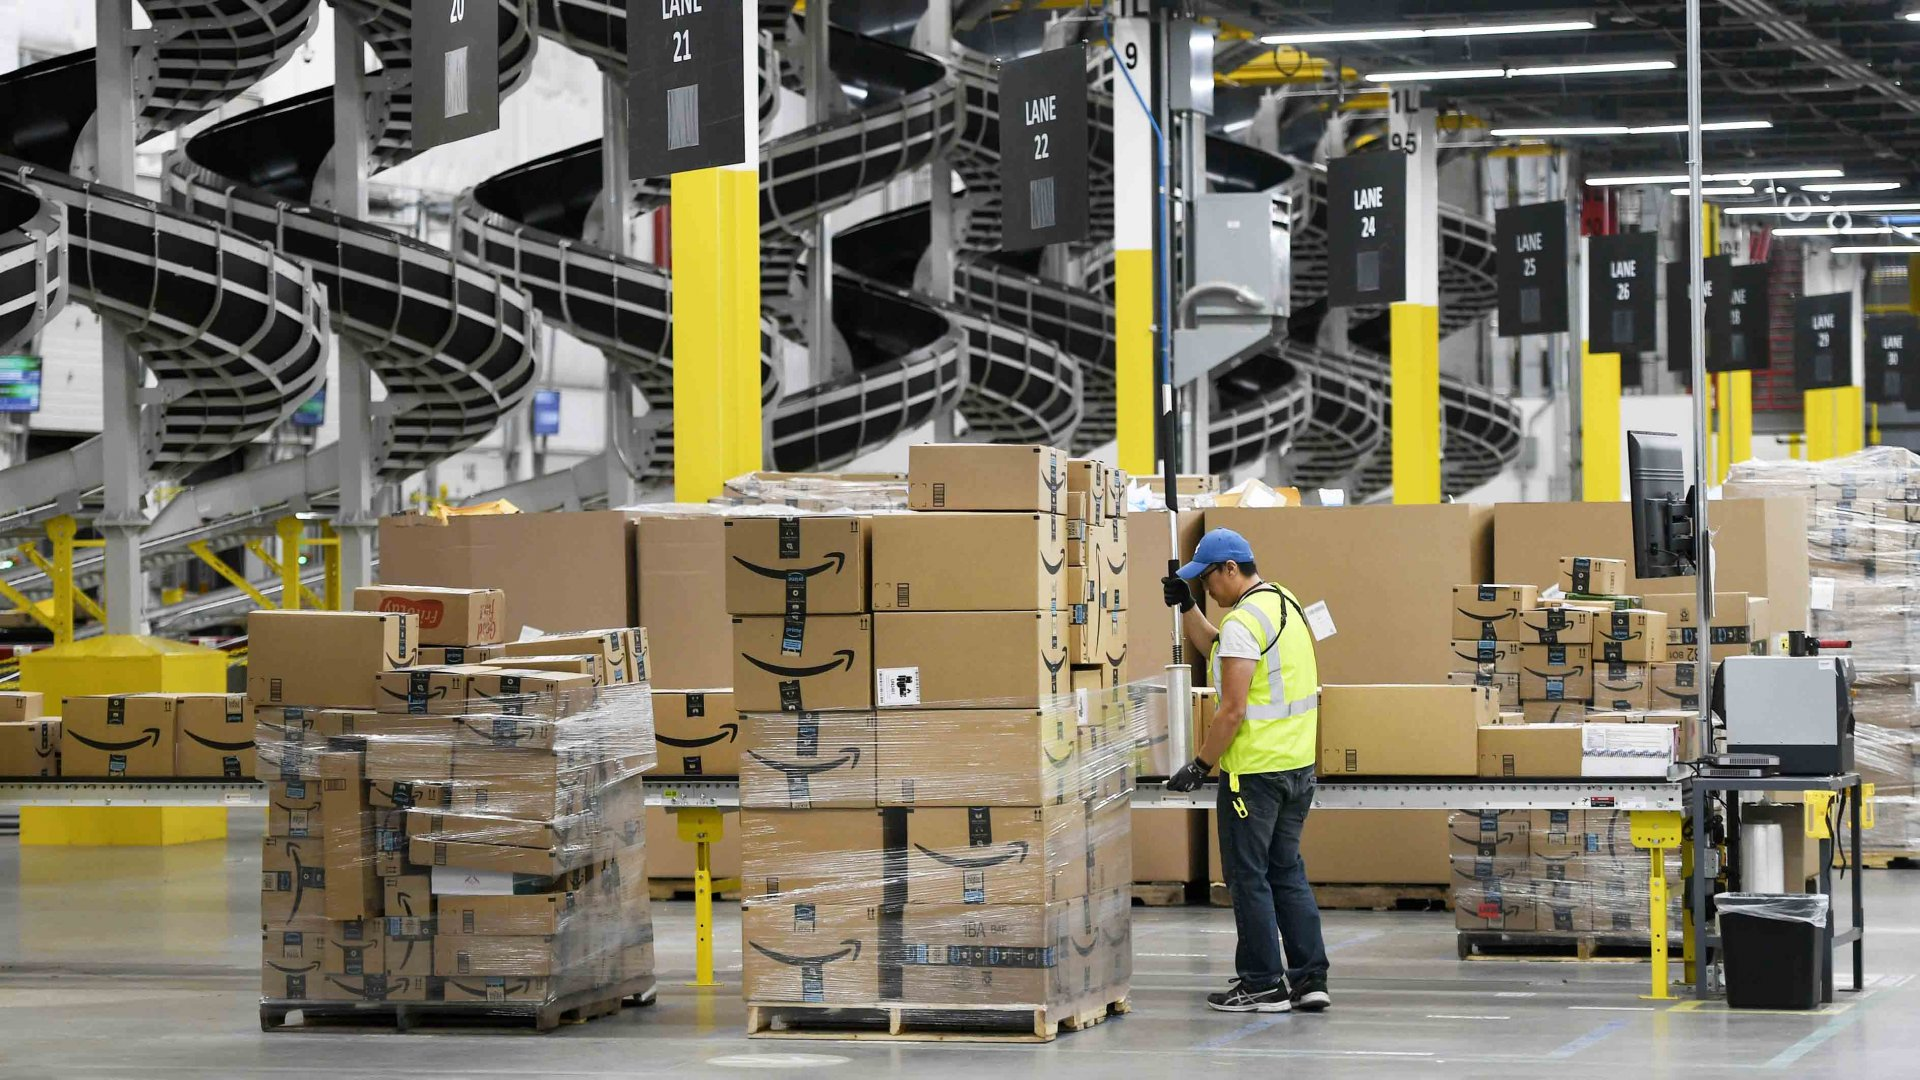 Amazon's Fulfillment Center in Thornton, Colorado.